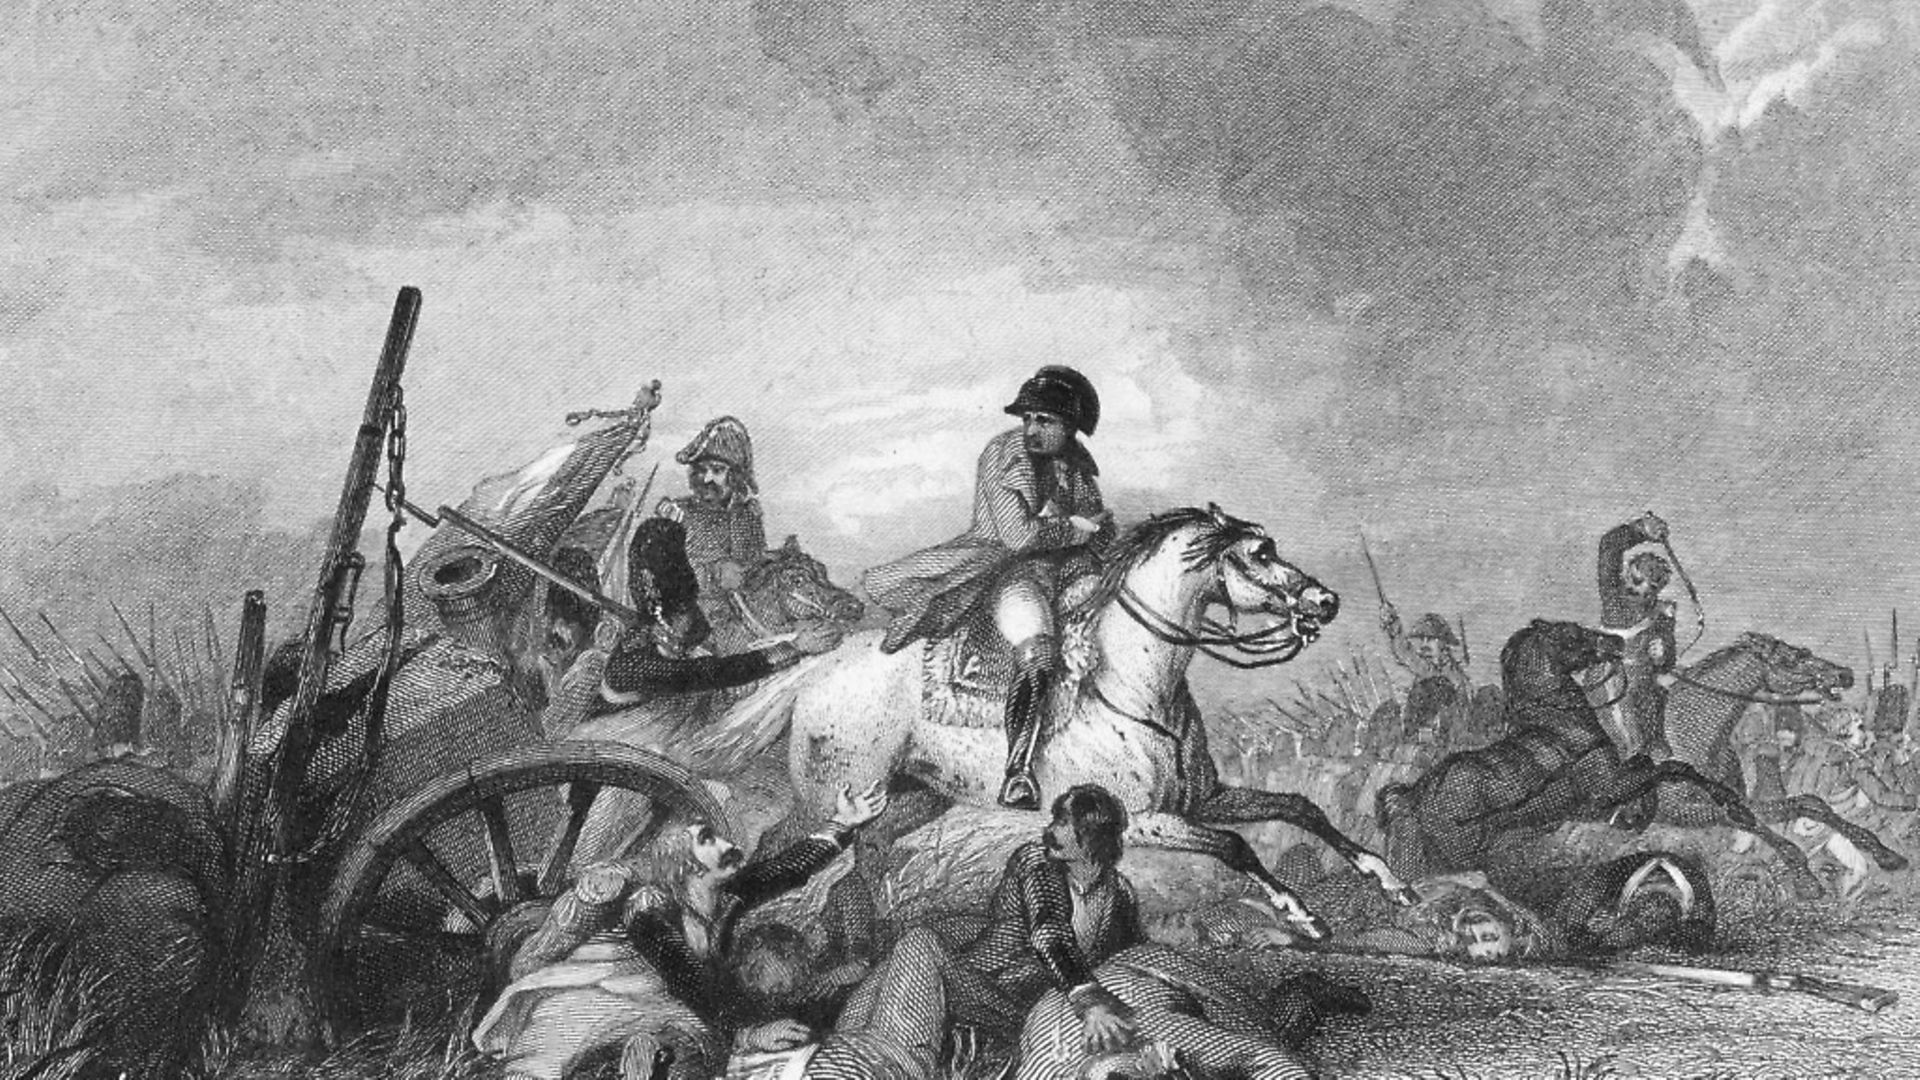 French Emperor Napoleon Bonaparte flees the pursuing allied troops after he is defeated at the Battle of Waterloo, 1815. An engraving from an original work by John Gilbert. Picture: Hulton Archive/Getty Images - Credit: Getty Images